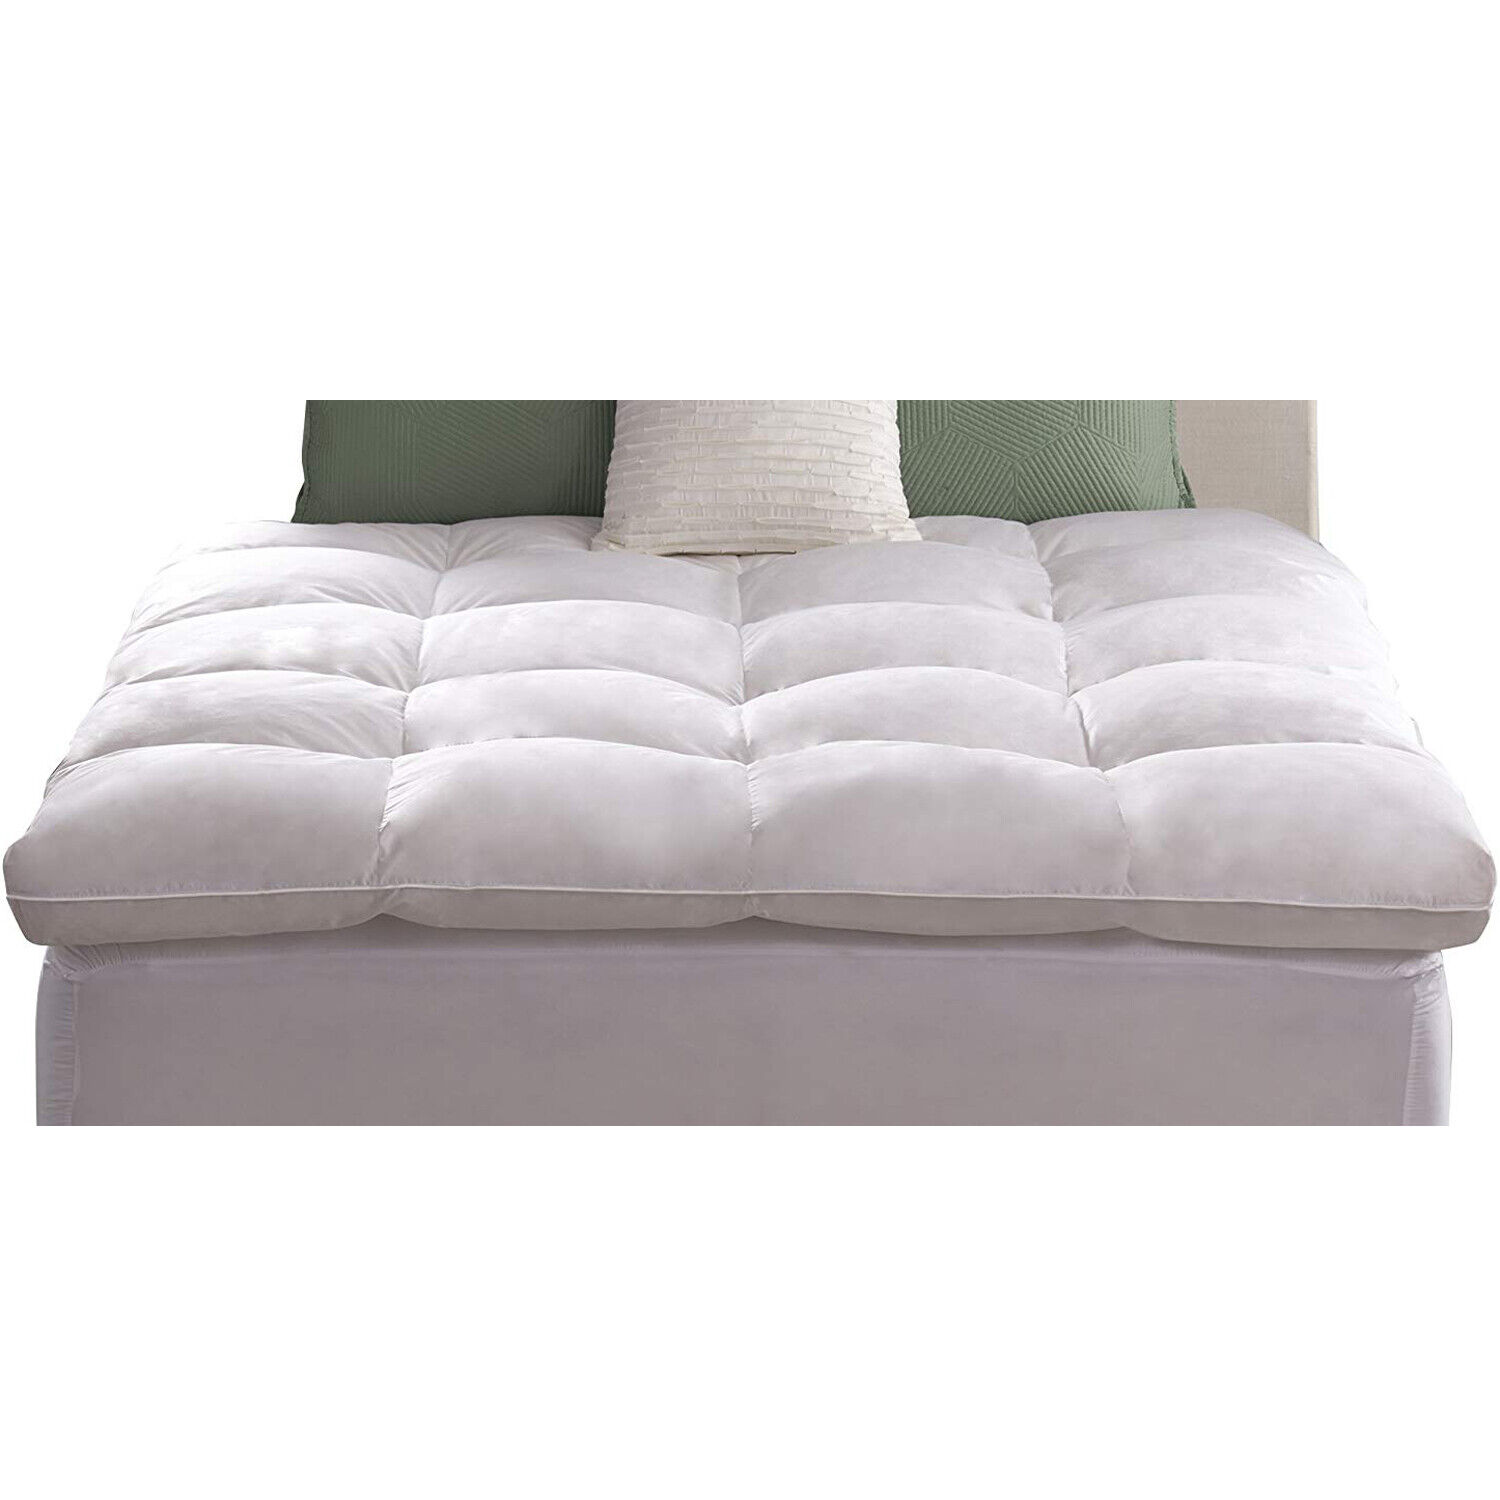 Extra Thick Natural Filling Mattress Topper Feather Bed Matress Pad Cotton Cover